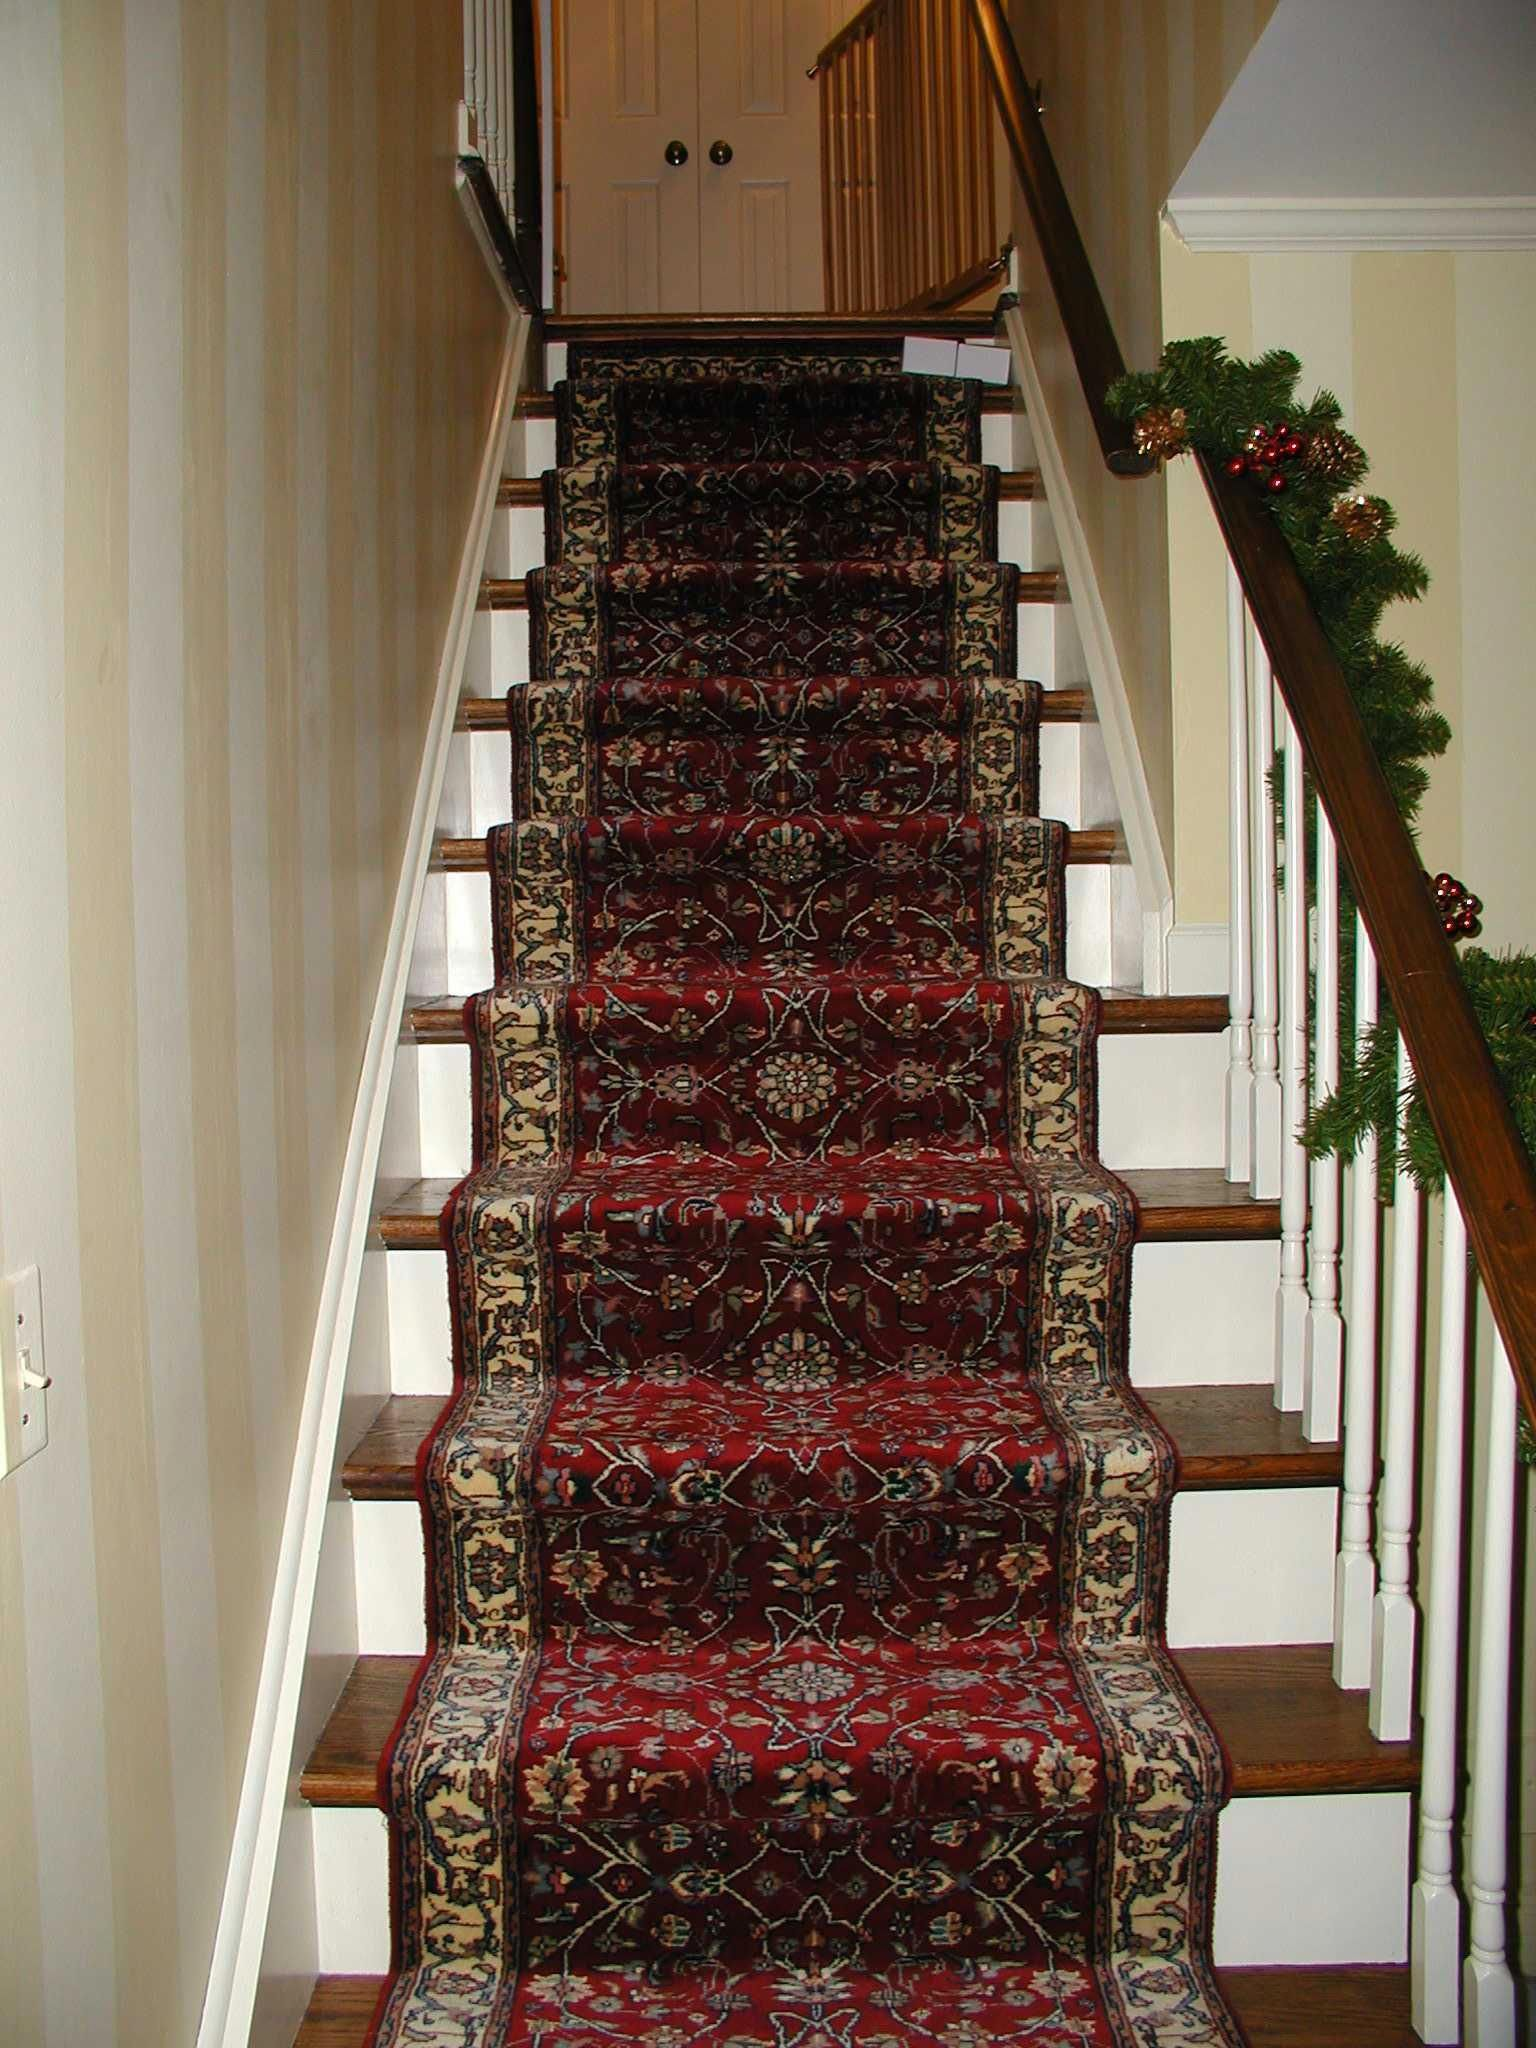 Carpetrunnersformoving in 2020 carpet stairs patterned